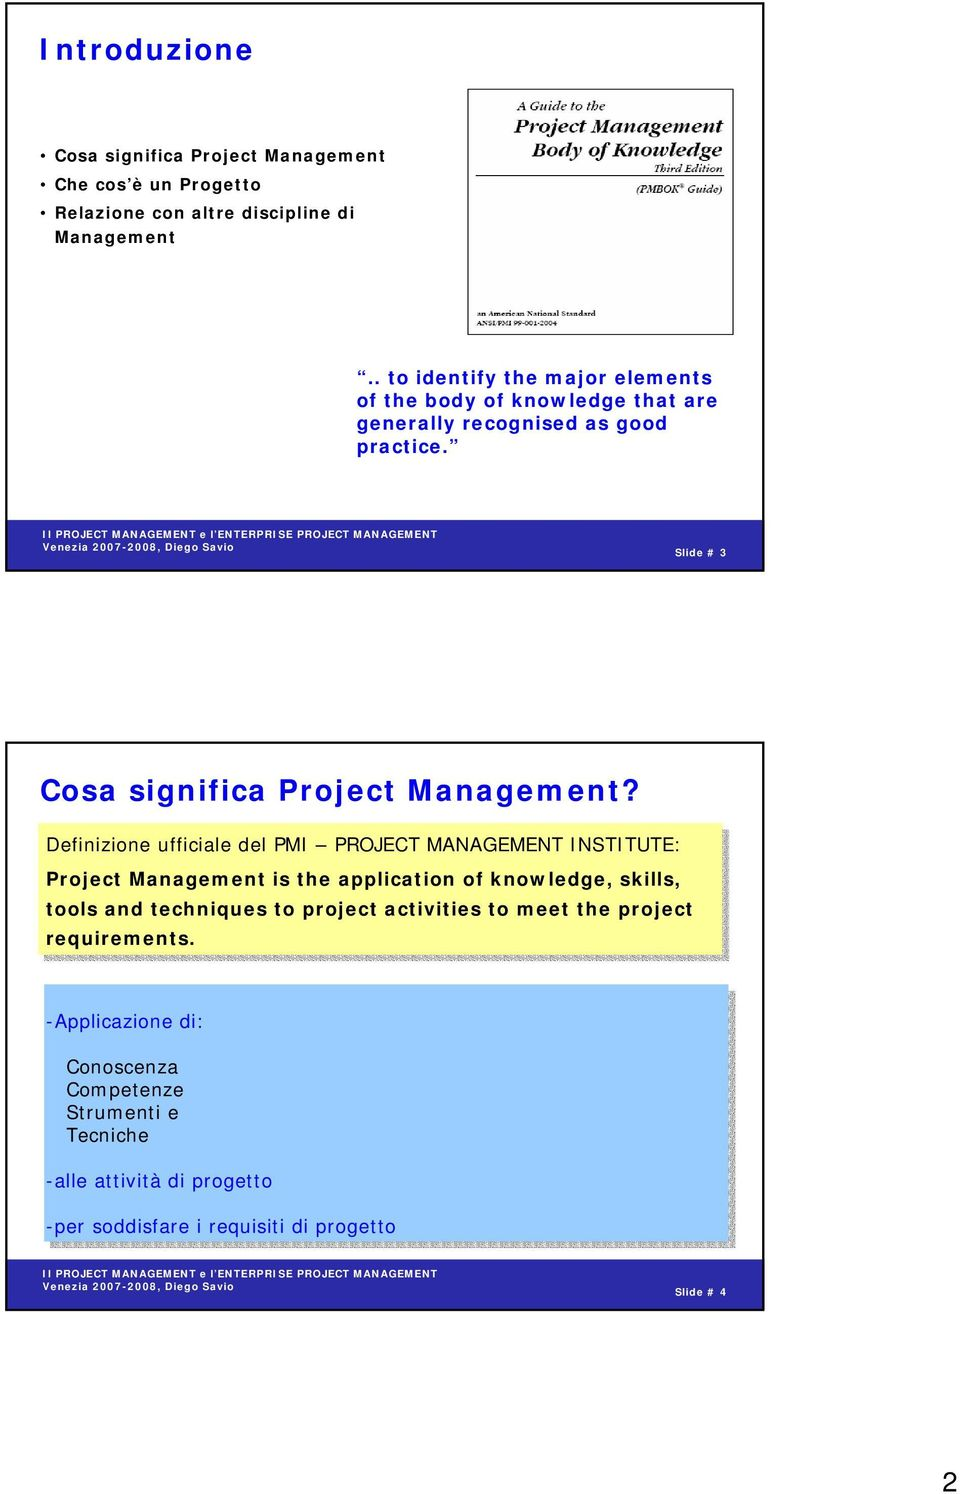 Definizione ufficiale del PMI PROJECT MANAGEMENT INSTITUTE: Project Management is the application of knowledge, skills, tools and techniques to